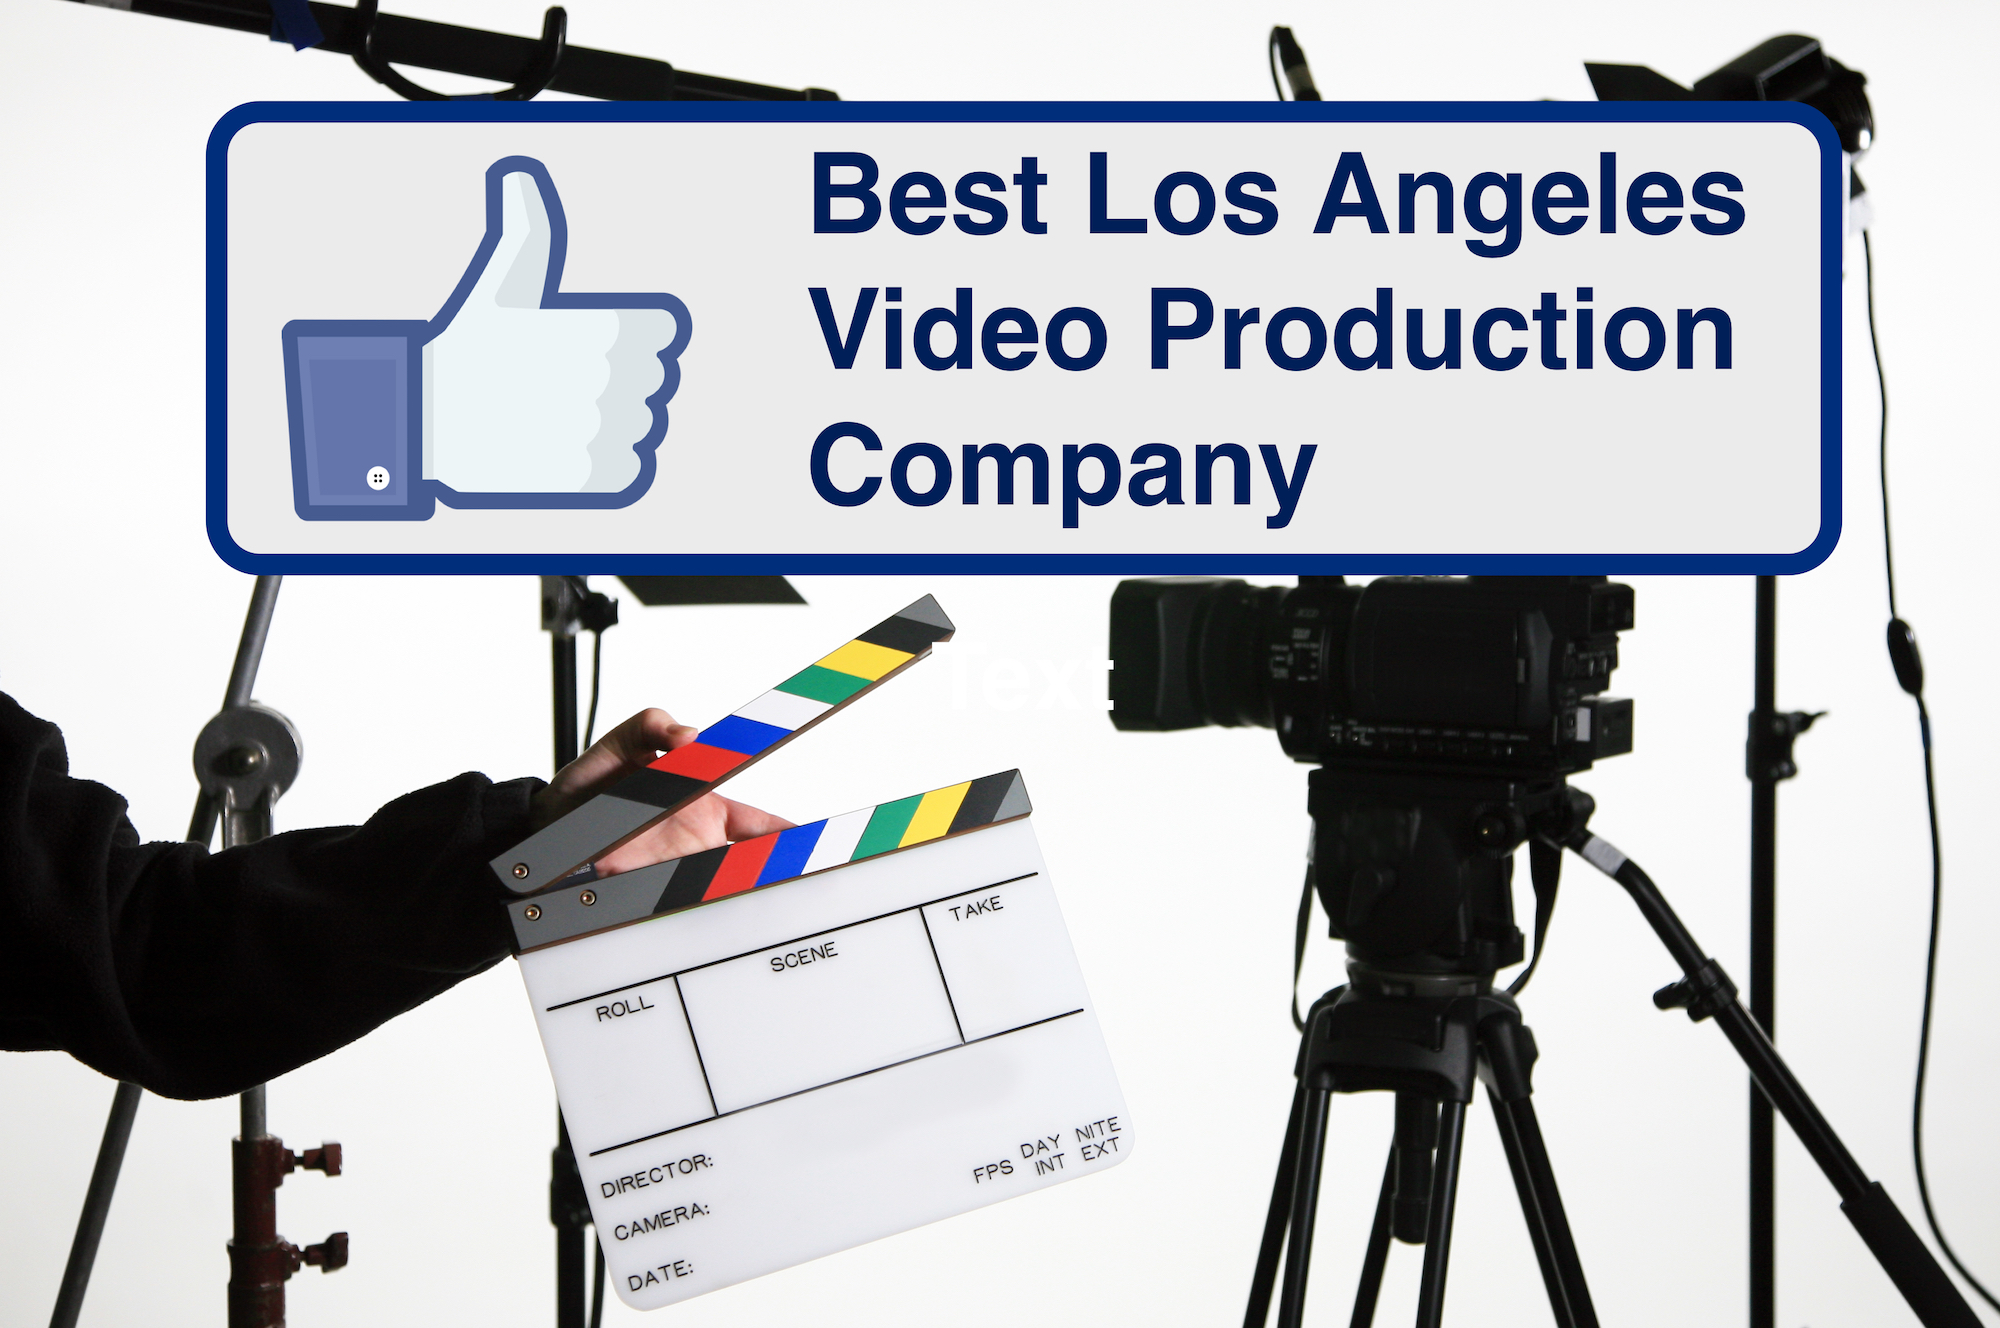 best los angeles video production company